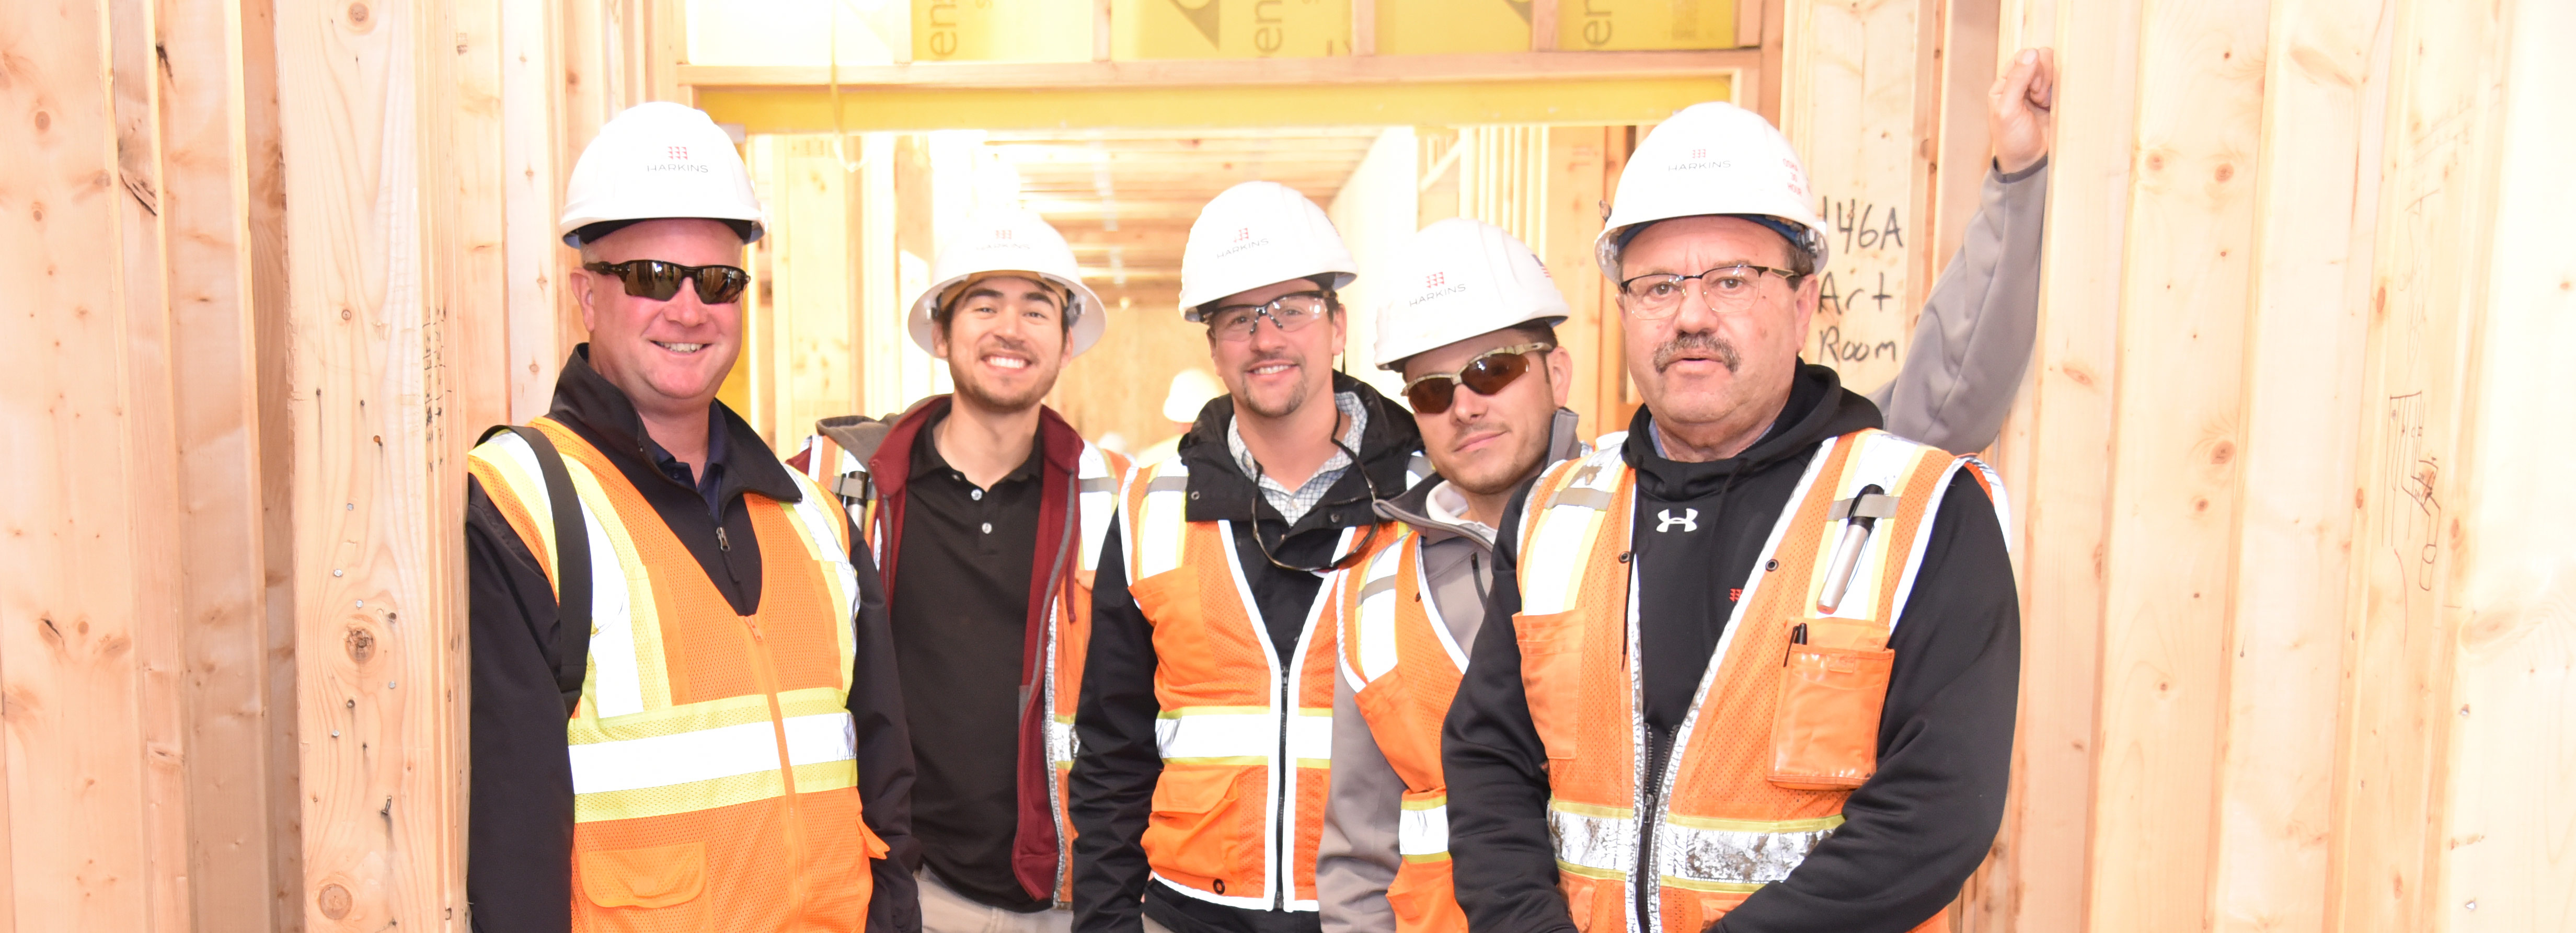 Group photo topping out construction framing